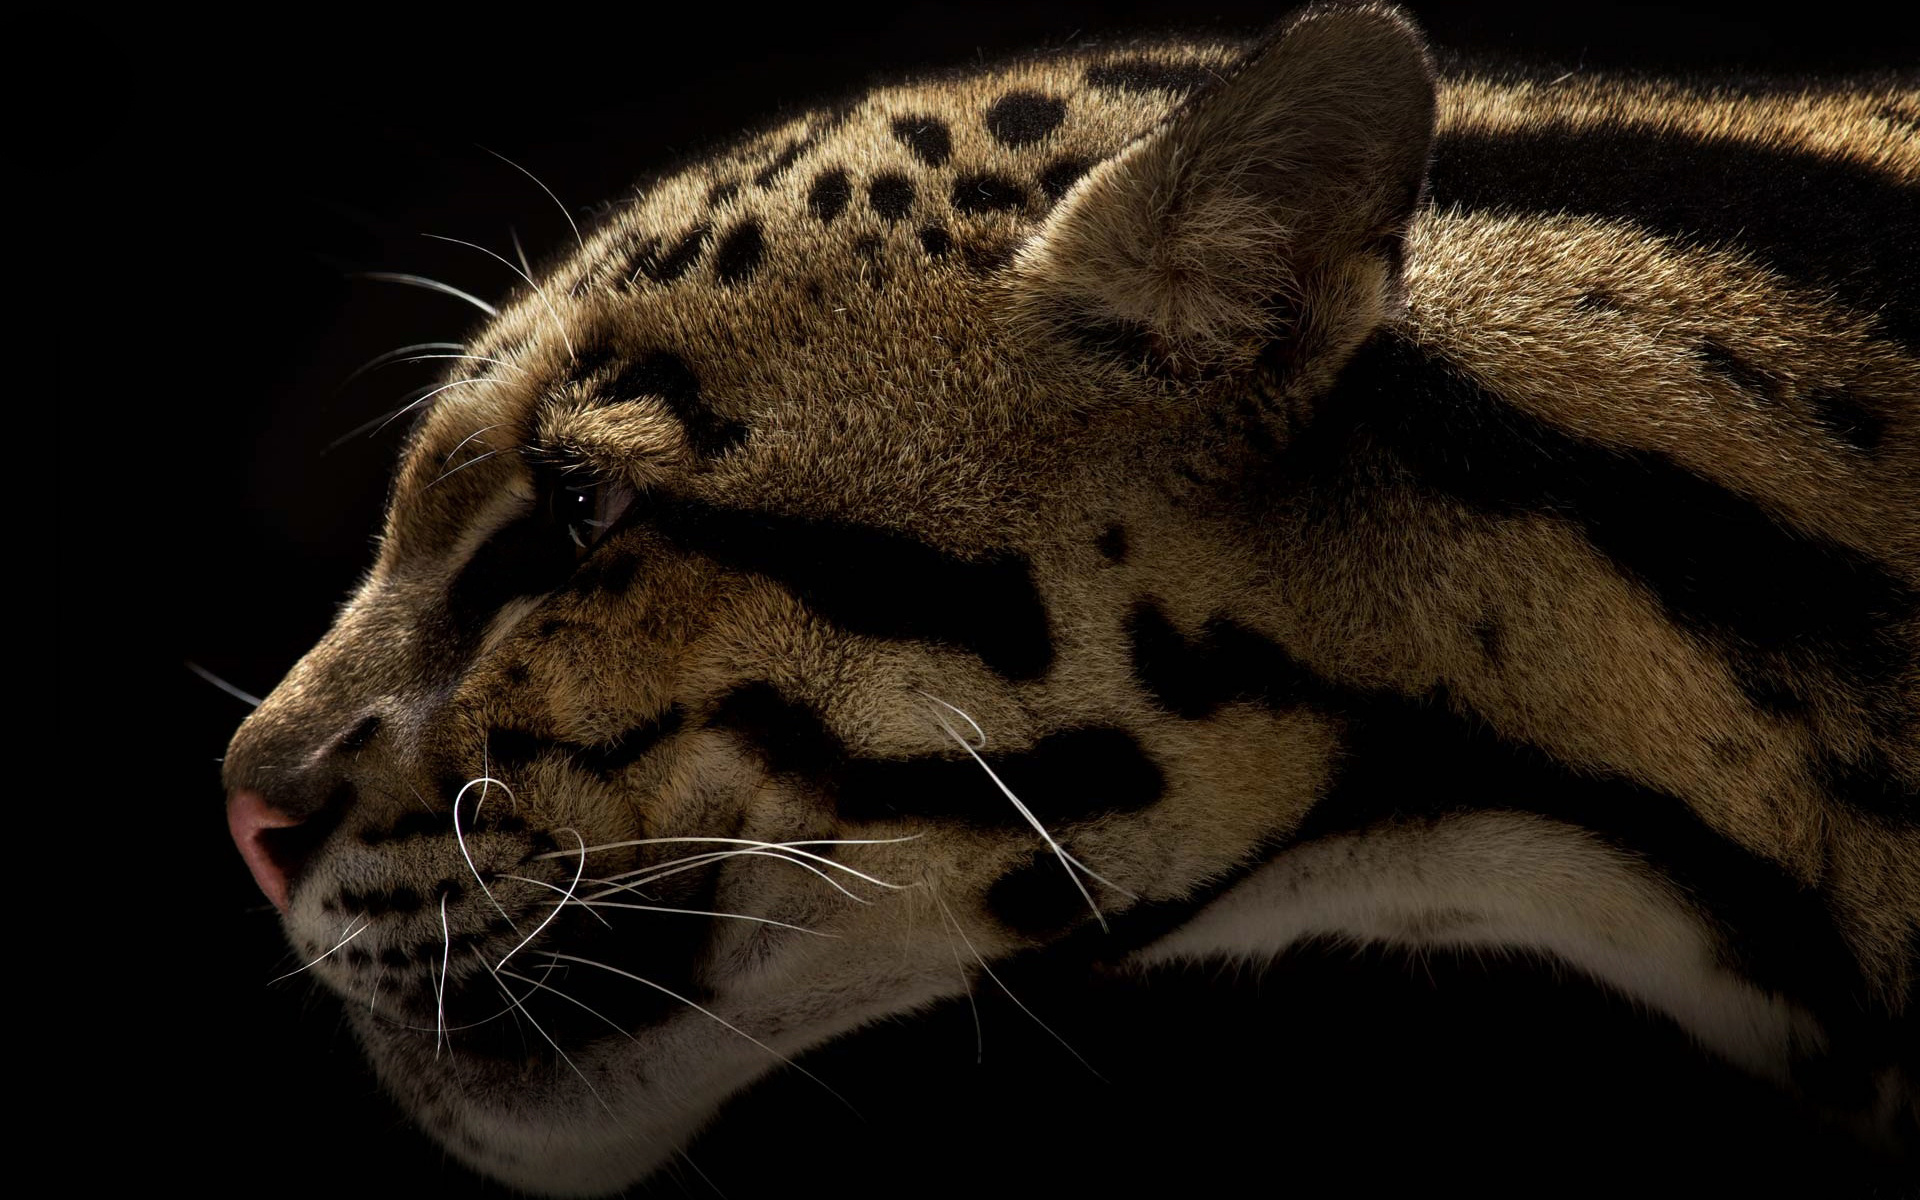 clouded leopard wallpaper - photo #21